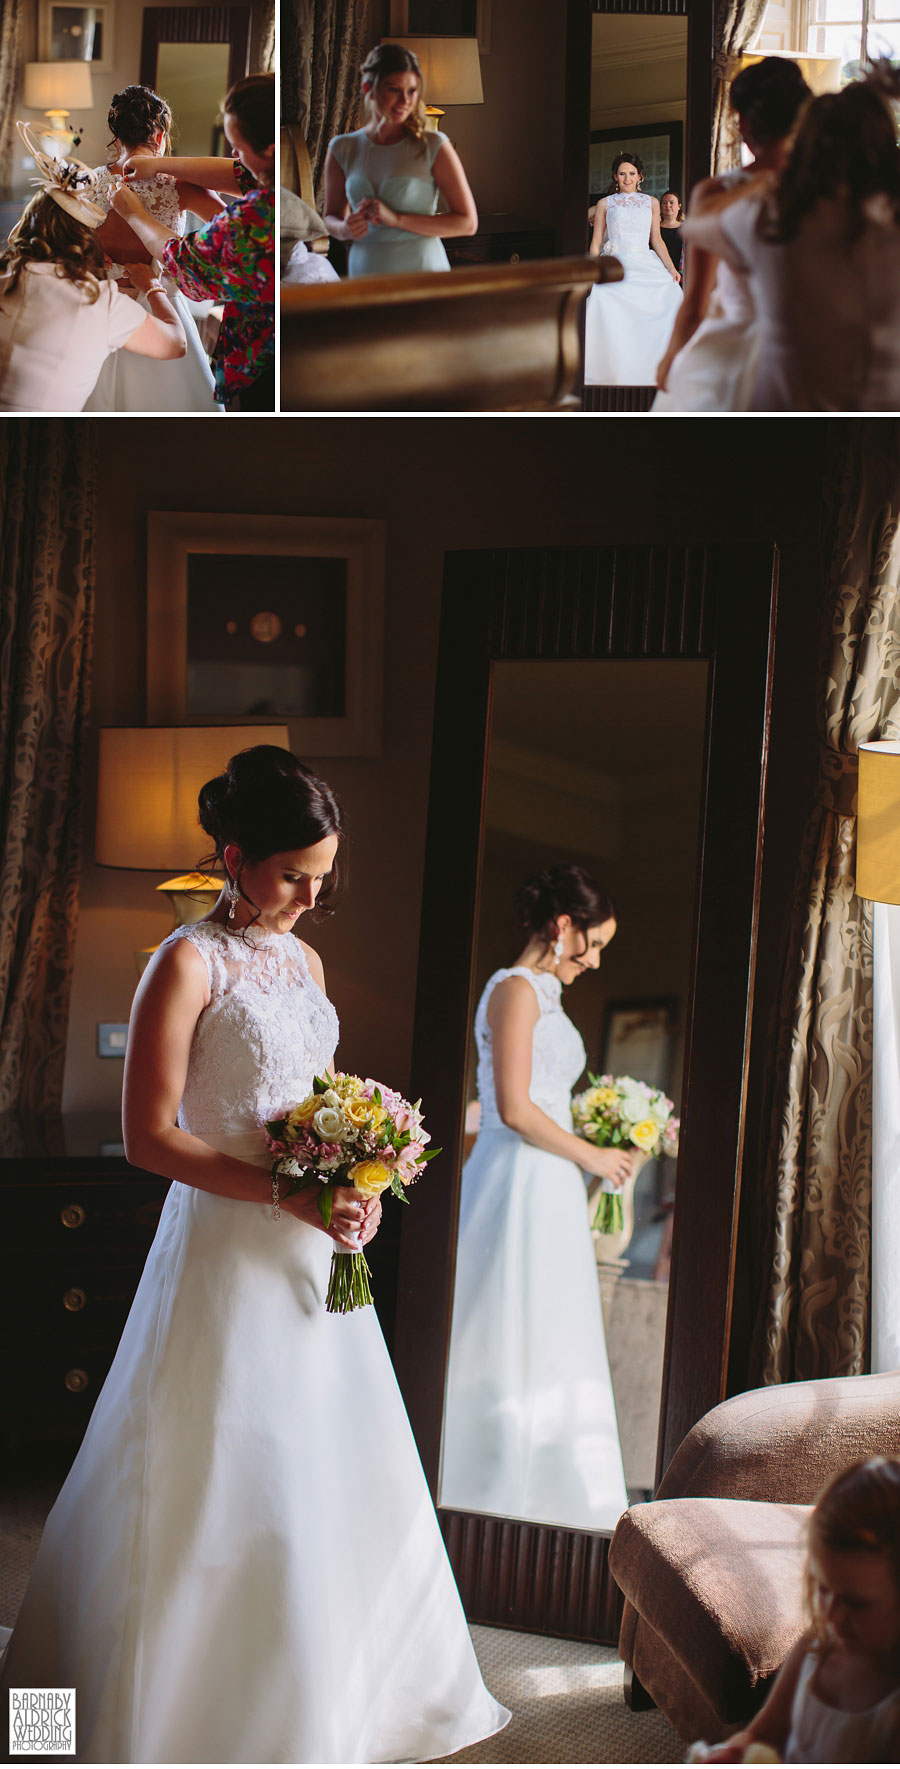 Wood Hall Linton Wetherby Wedding Photography 017